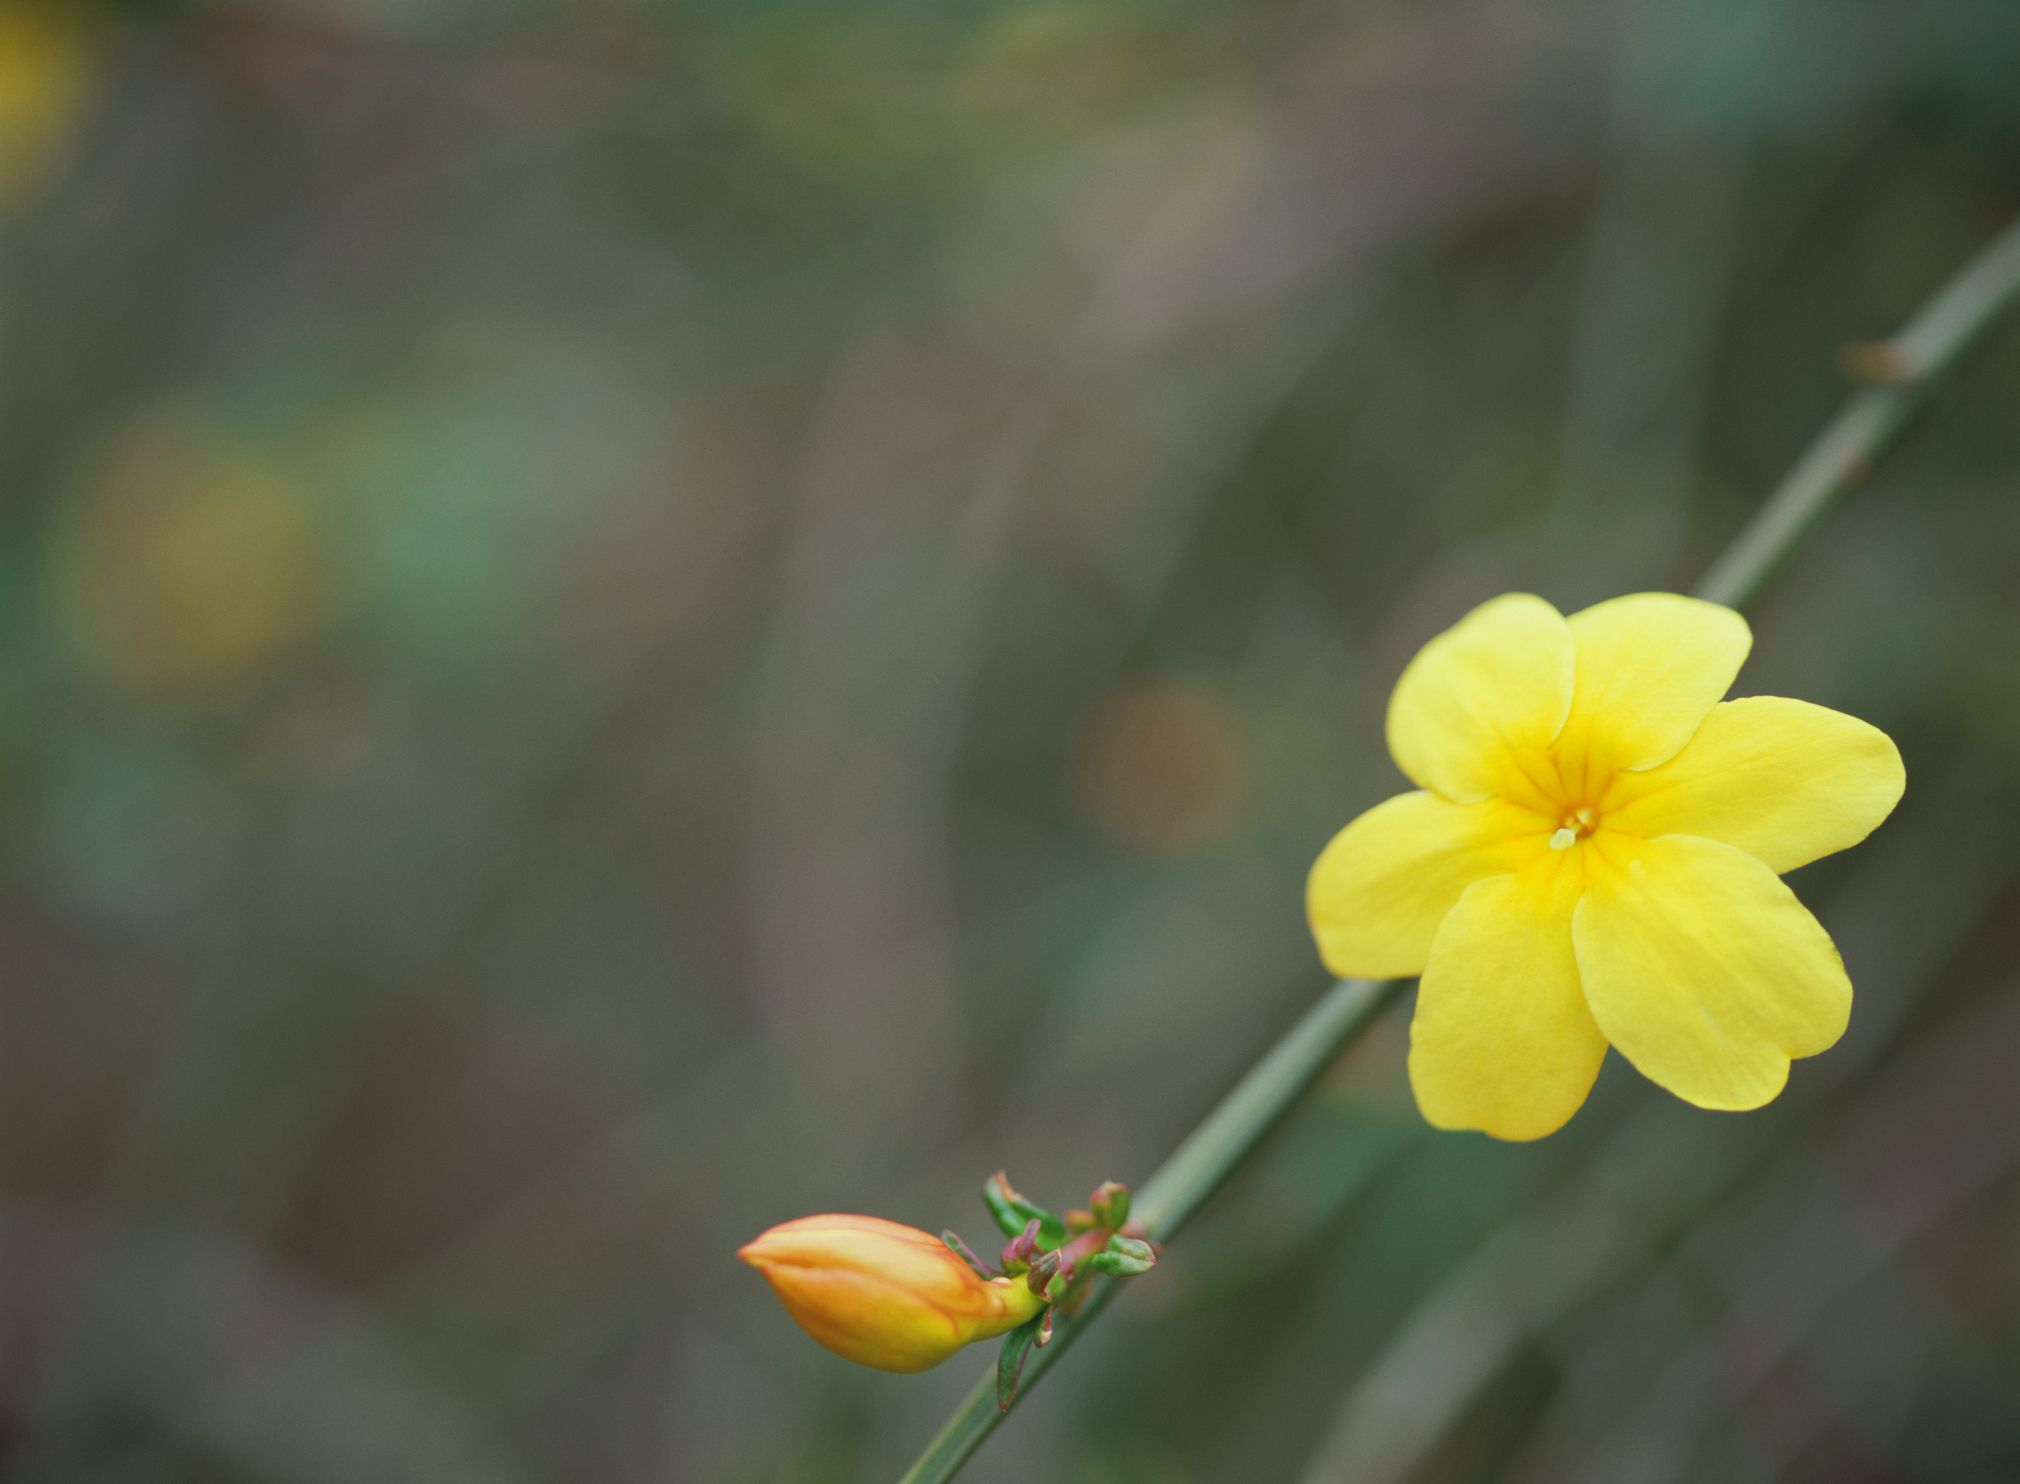 Growing Winter Jasmine Vines